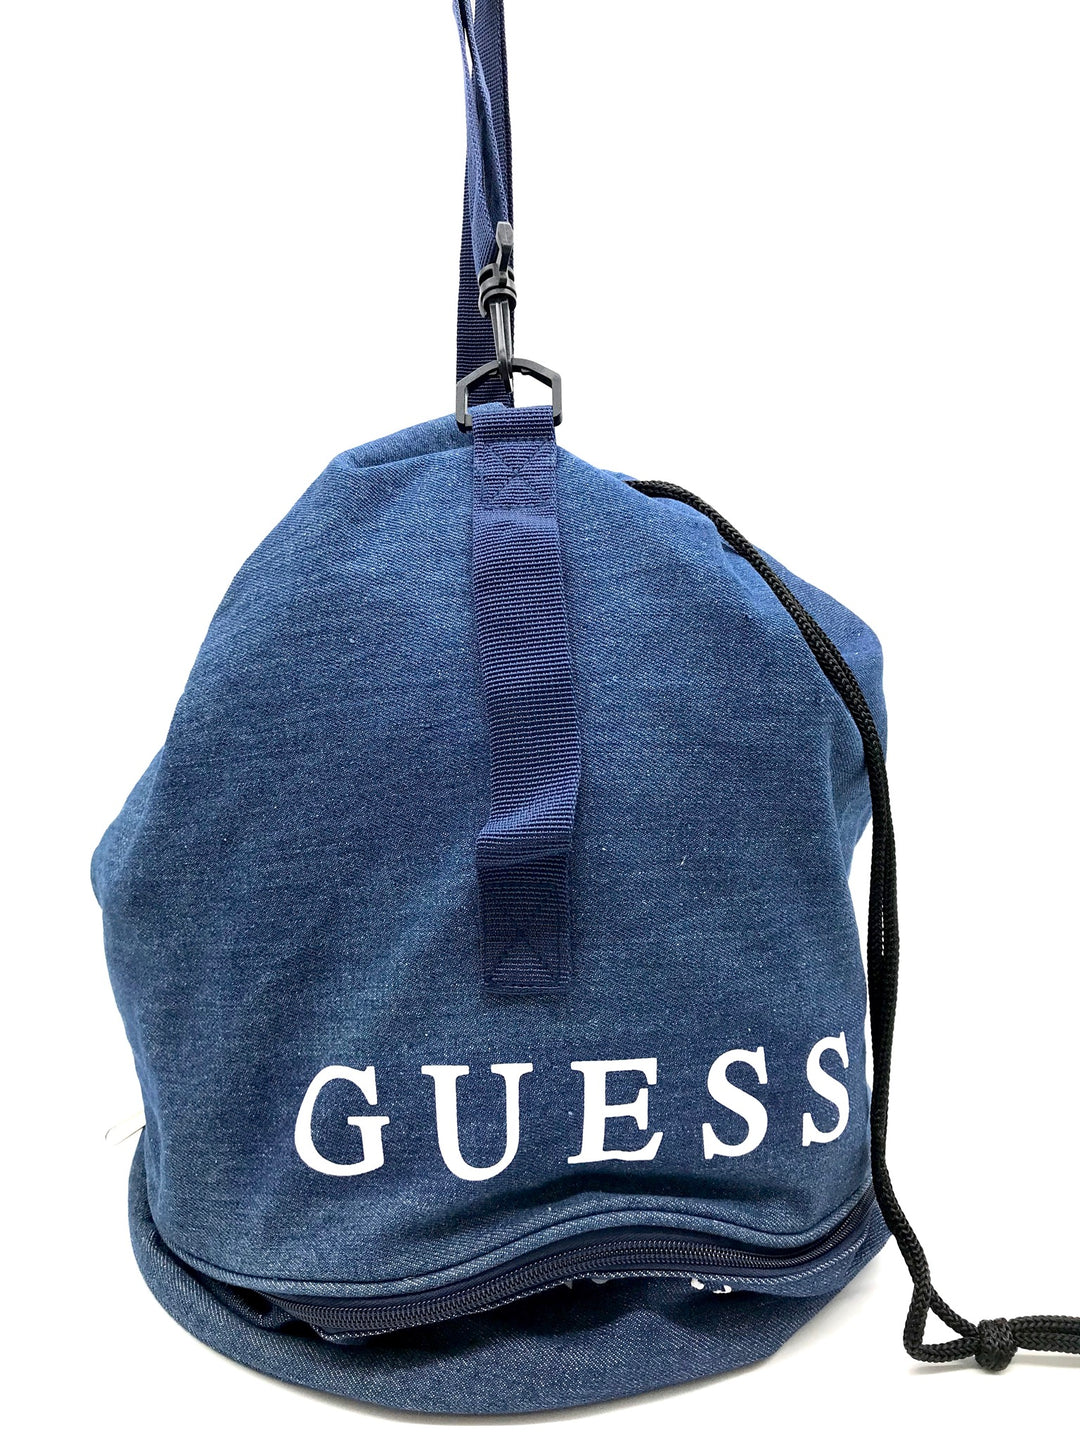 Primary Photo - <P>BRAND: GUESS <BR>STYLE: BACKPACK/HANDBAG <BR>COLOR: DENIM <BR>SIZE: SMALL <BR>SKU: 262-26275-64641<BR>AS IS</P>